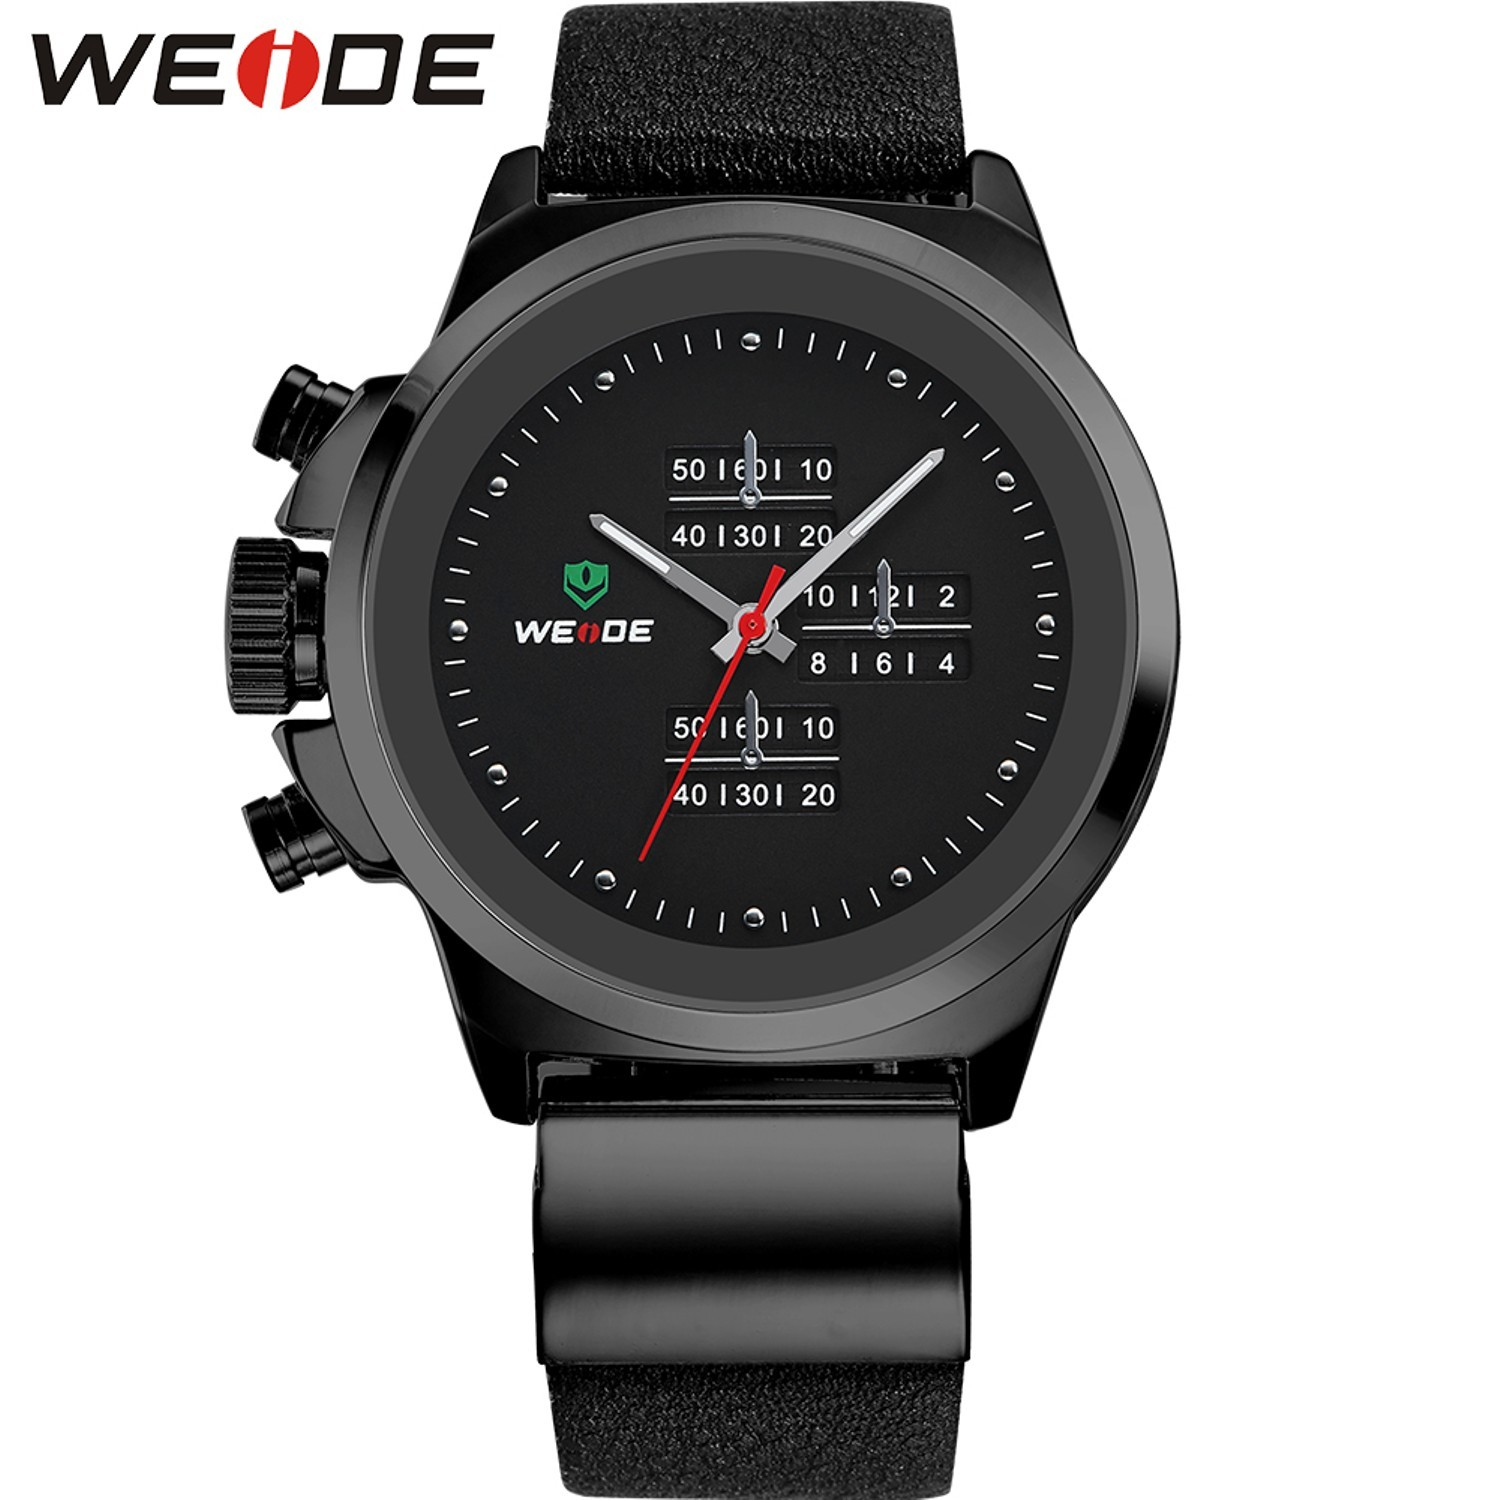 WEIDE-Brand-Popular-Men-Watches-Fashion-Analog-Quartz-Sports-Watch-Waterproof-Black-Dial-Clock-Leather-Strap_1500x1500_STRETCH_684.jpg